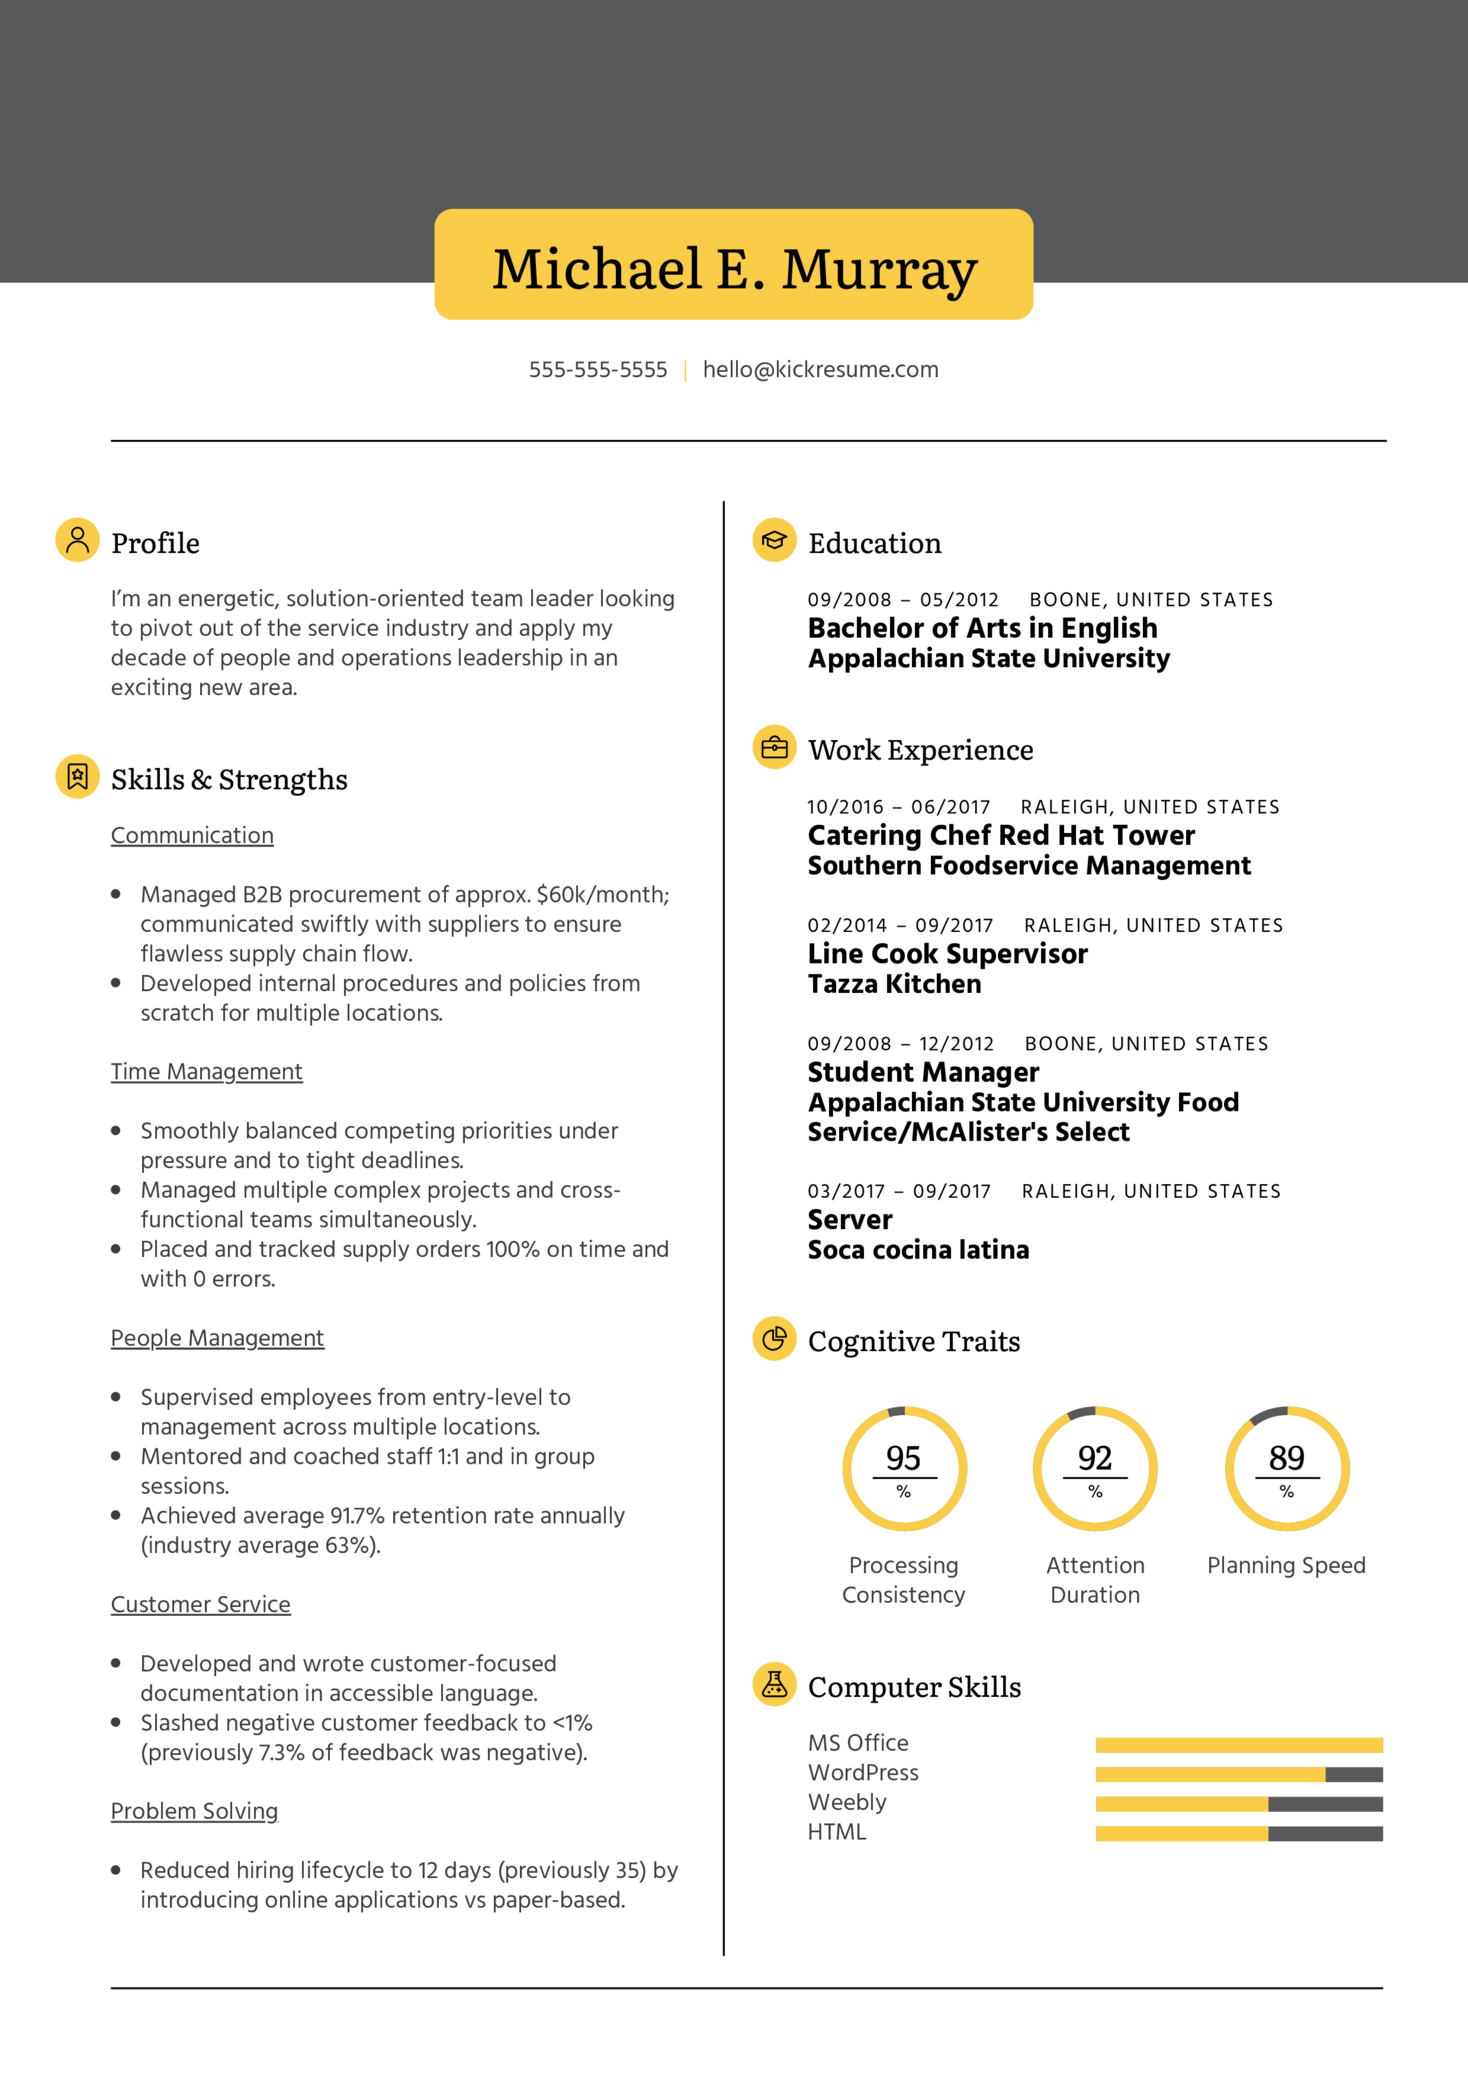 Resume Examples by Real People: Line cook supervisor CV ...